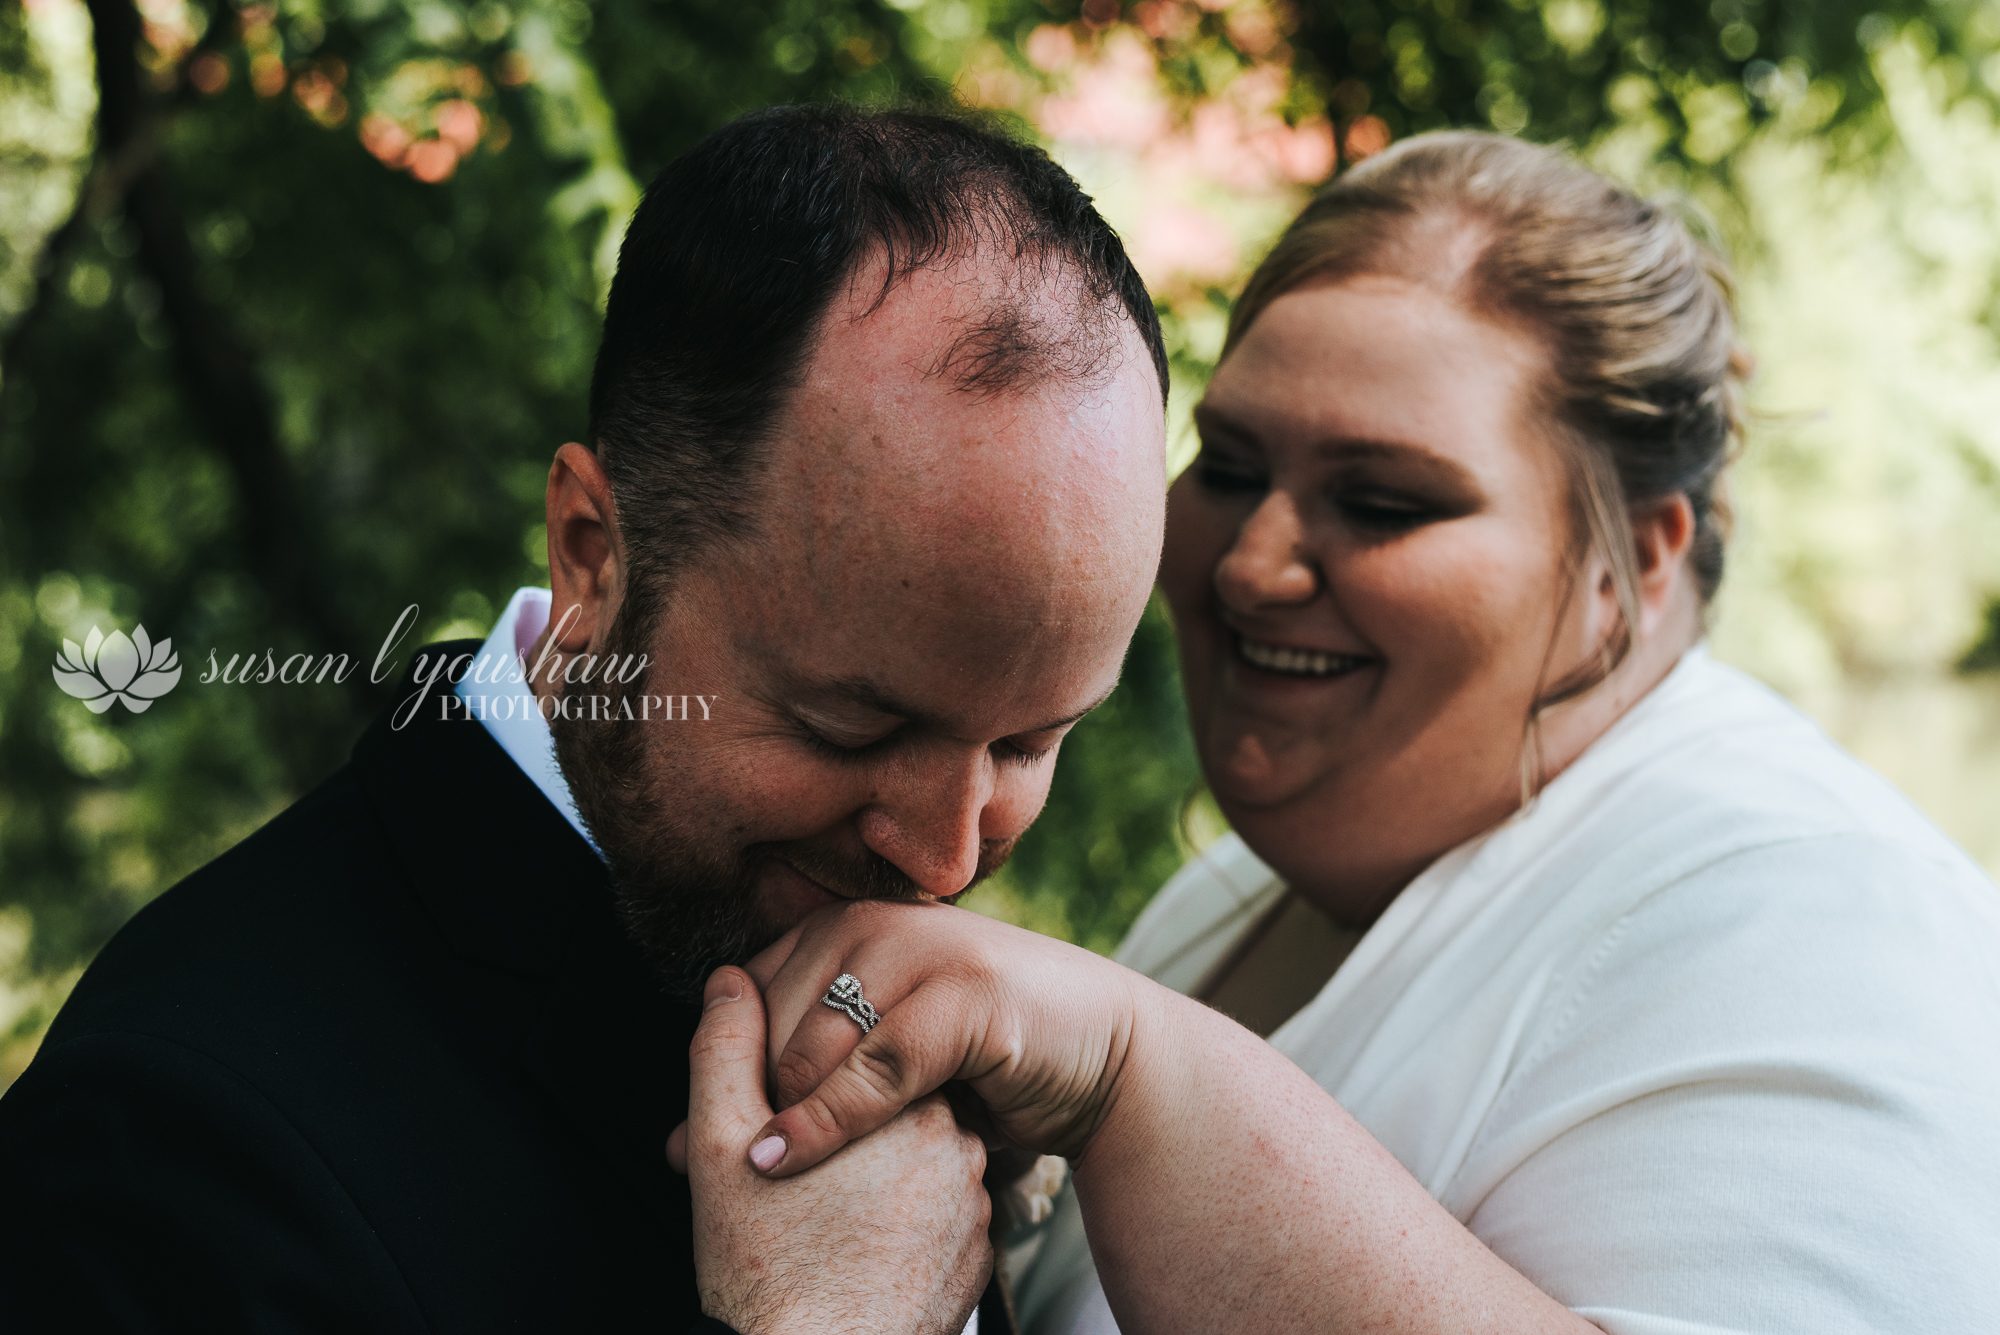 Bill and Sarah Wedding Photos 06-08-2019 SLY Photography -68.jpg